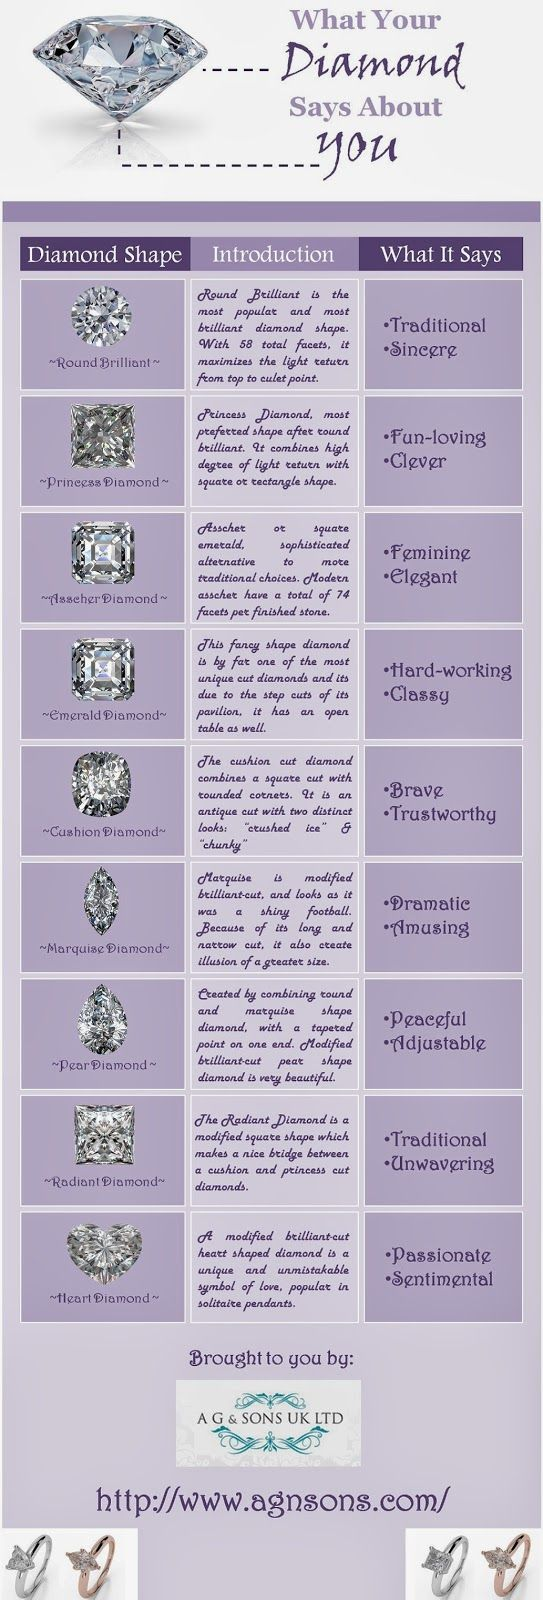 What Your Diamond Says About You?   #infographic #Diamond #Jewelry #LifeStyle